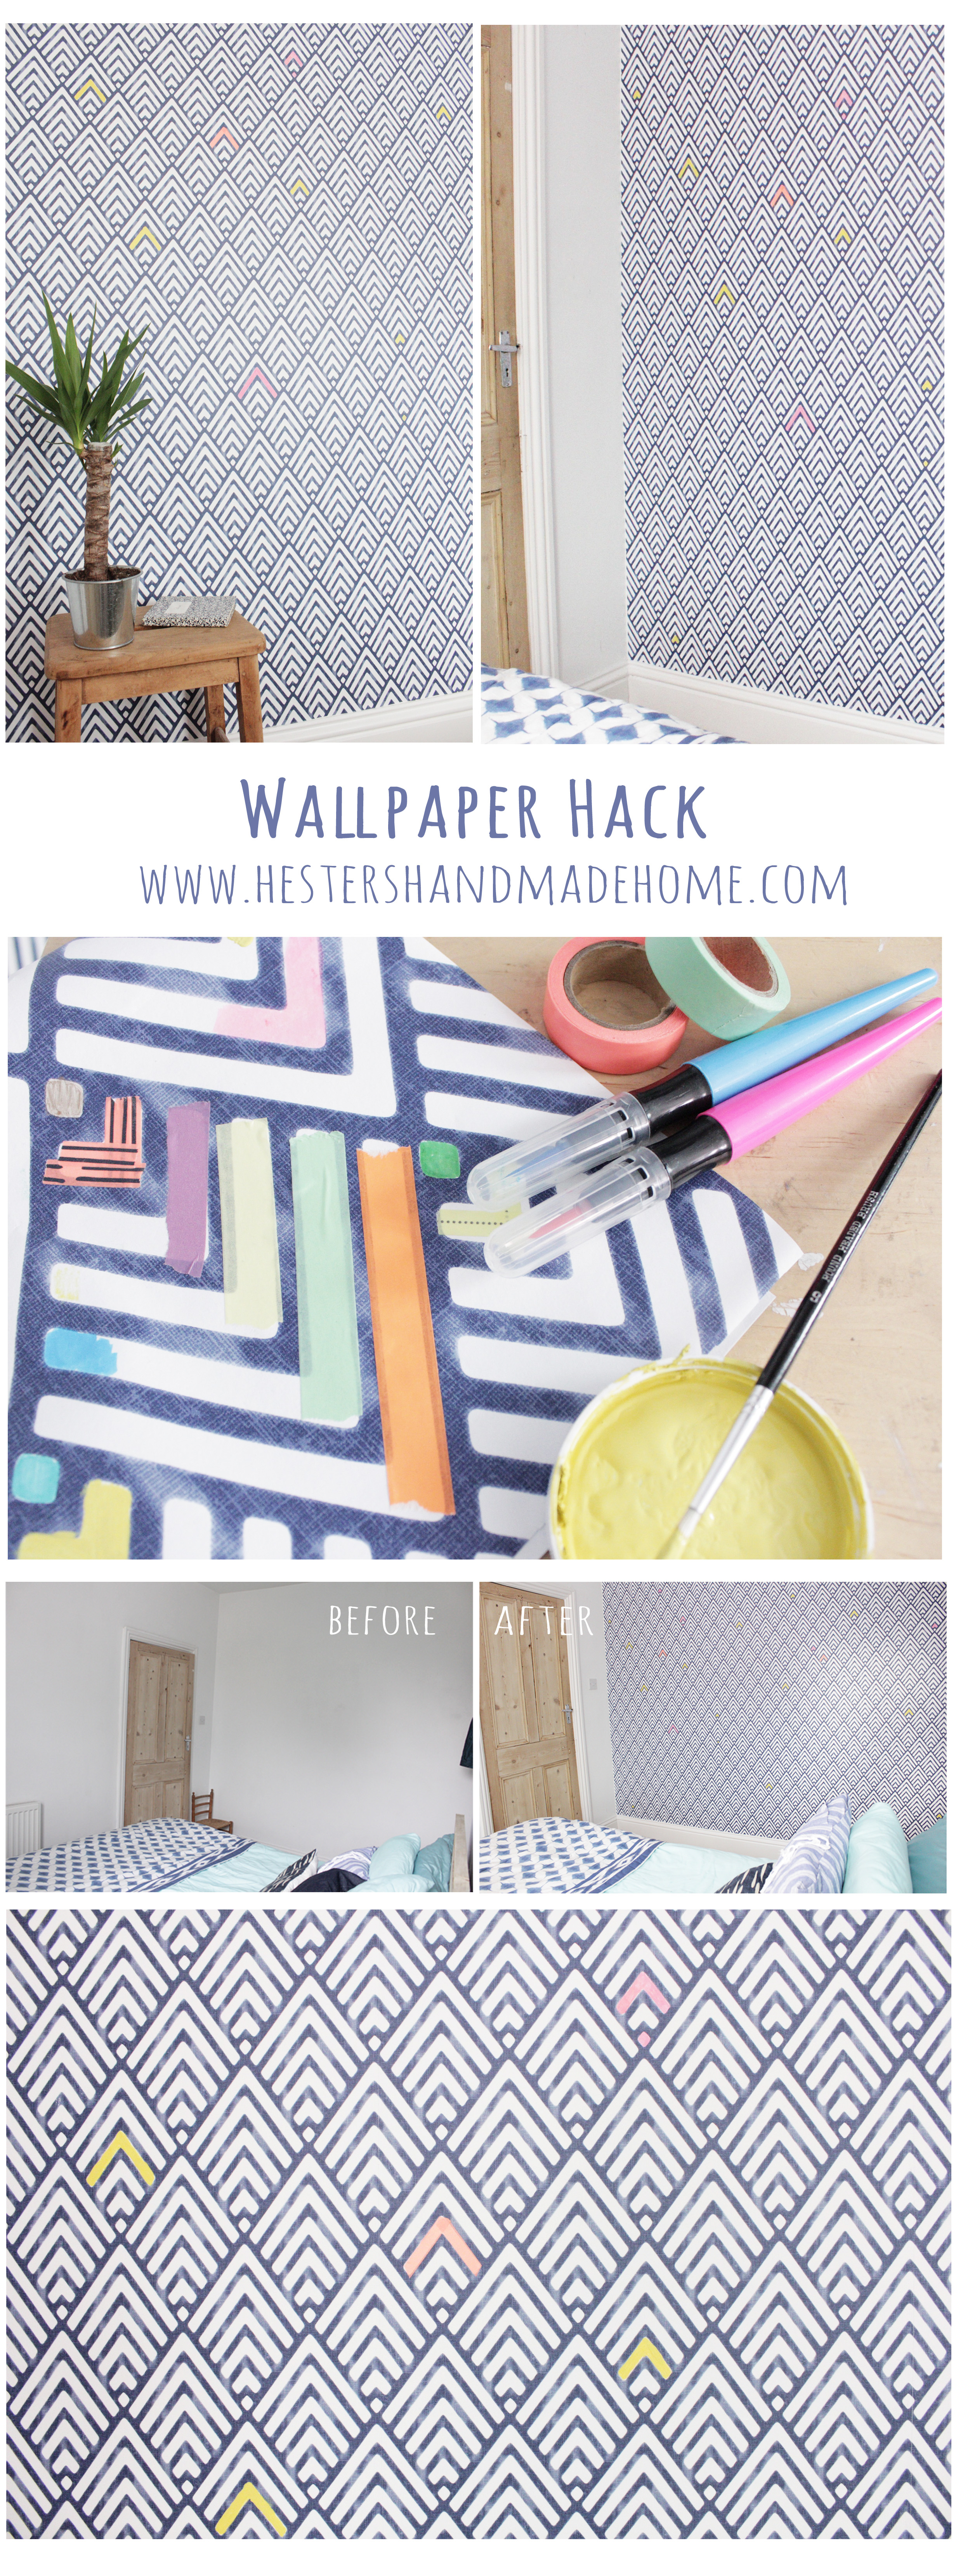 wallpaper hack, customize your wallpaper with Hester's Handmade Home